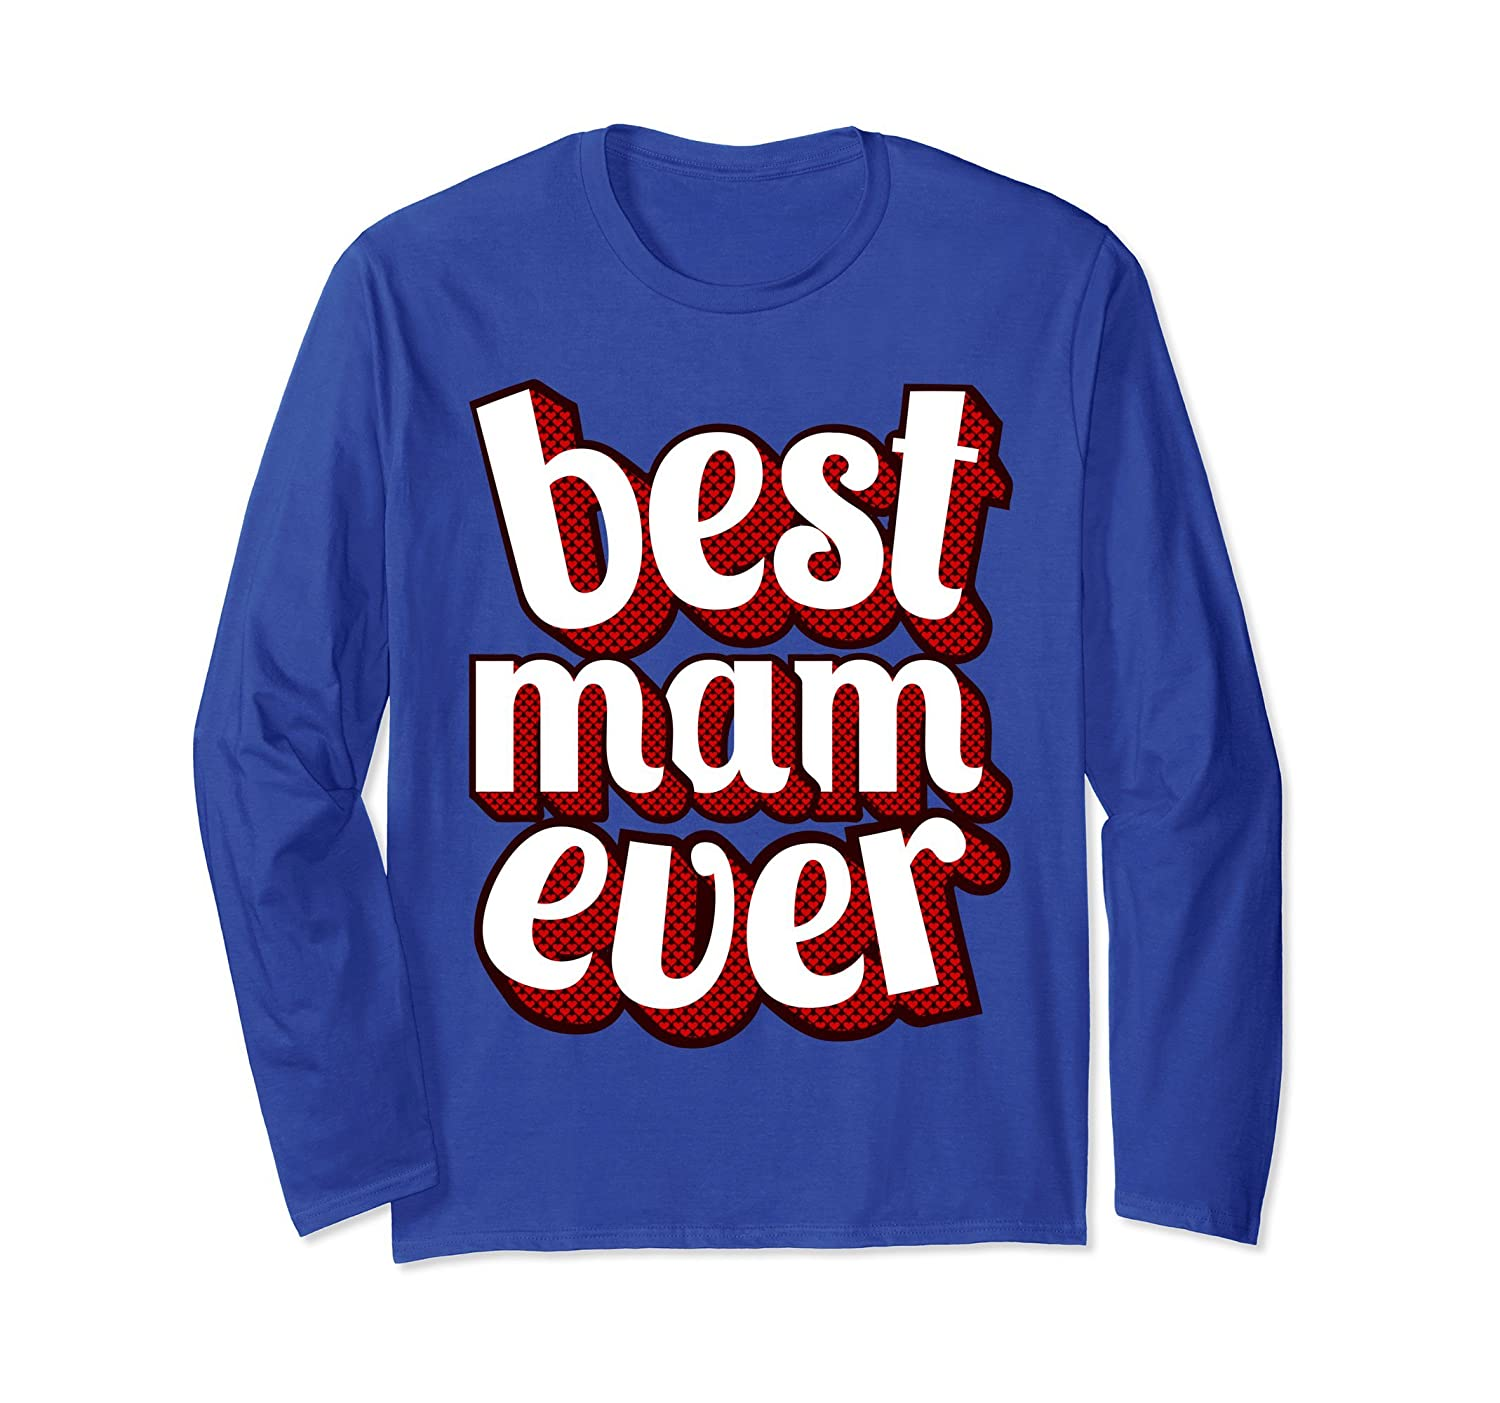 Best Mam Ever Long Sleeve Tee Shirt Fun Vintage Retro Design-alottee gift